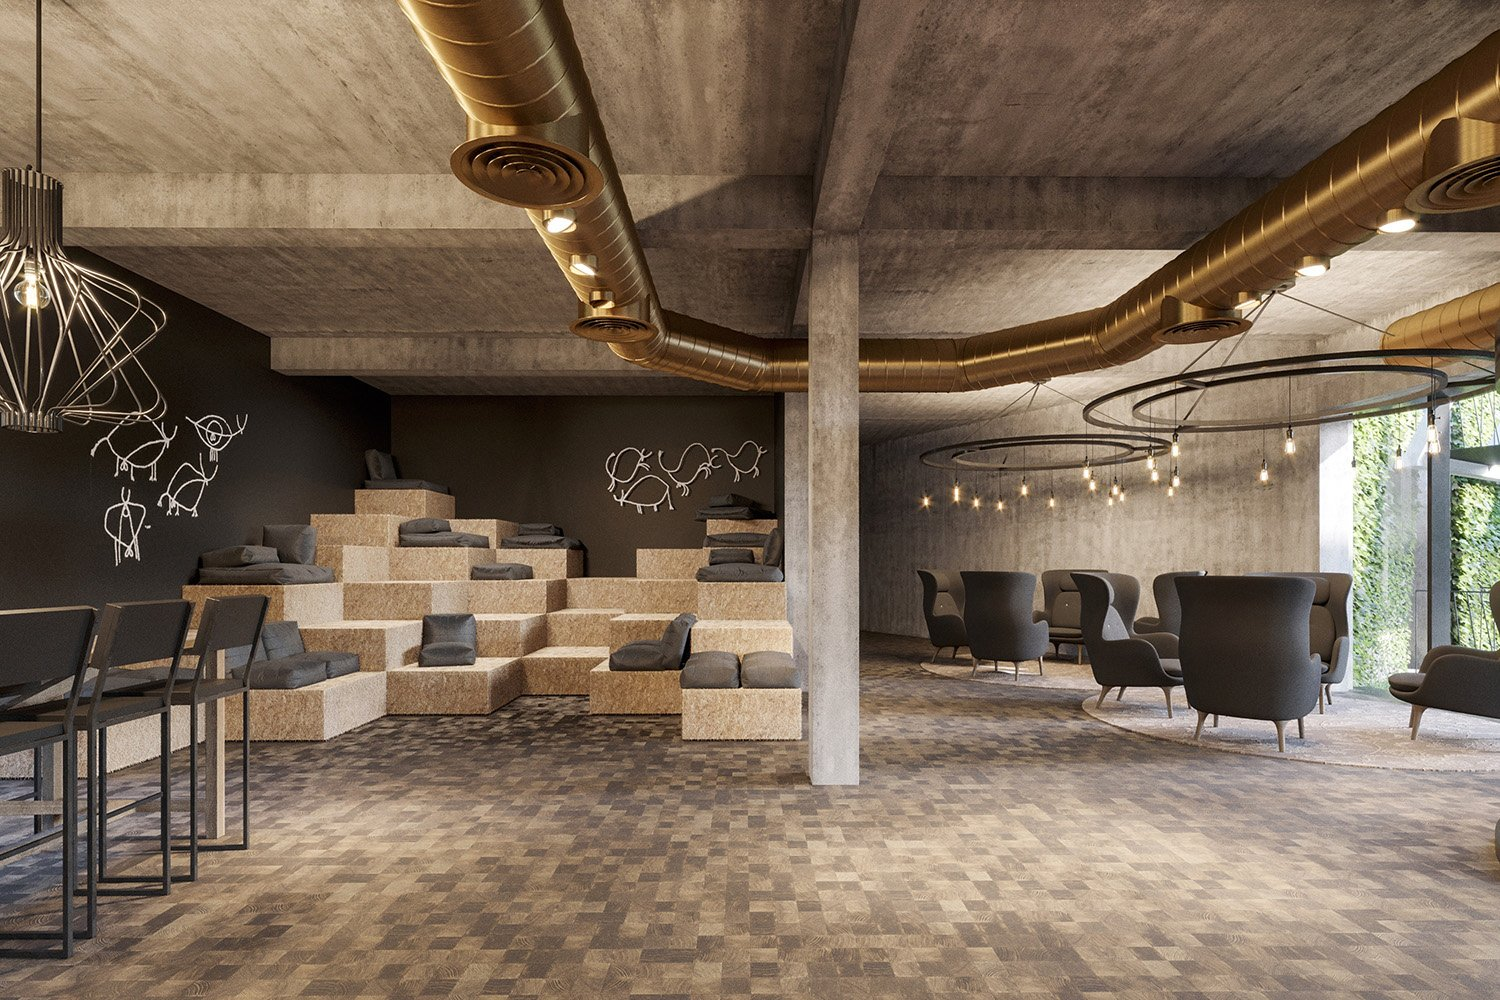 enota maestoso hotel & spa 10 Studio Spacer (visualisations)}